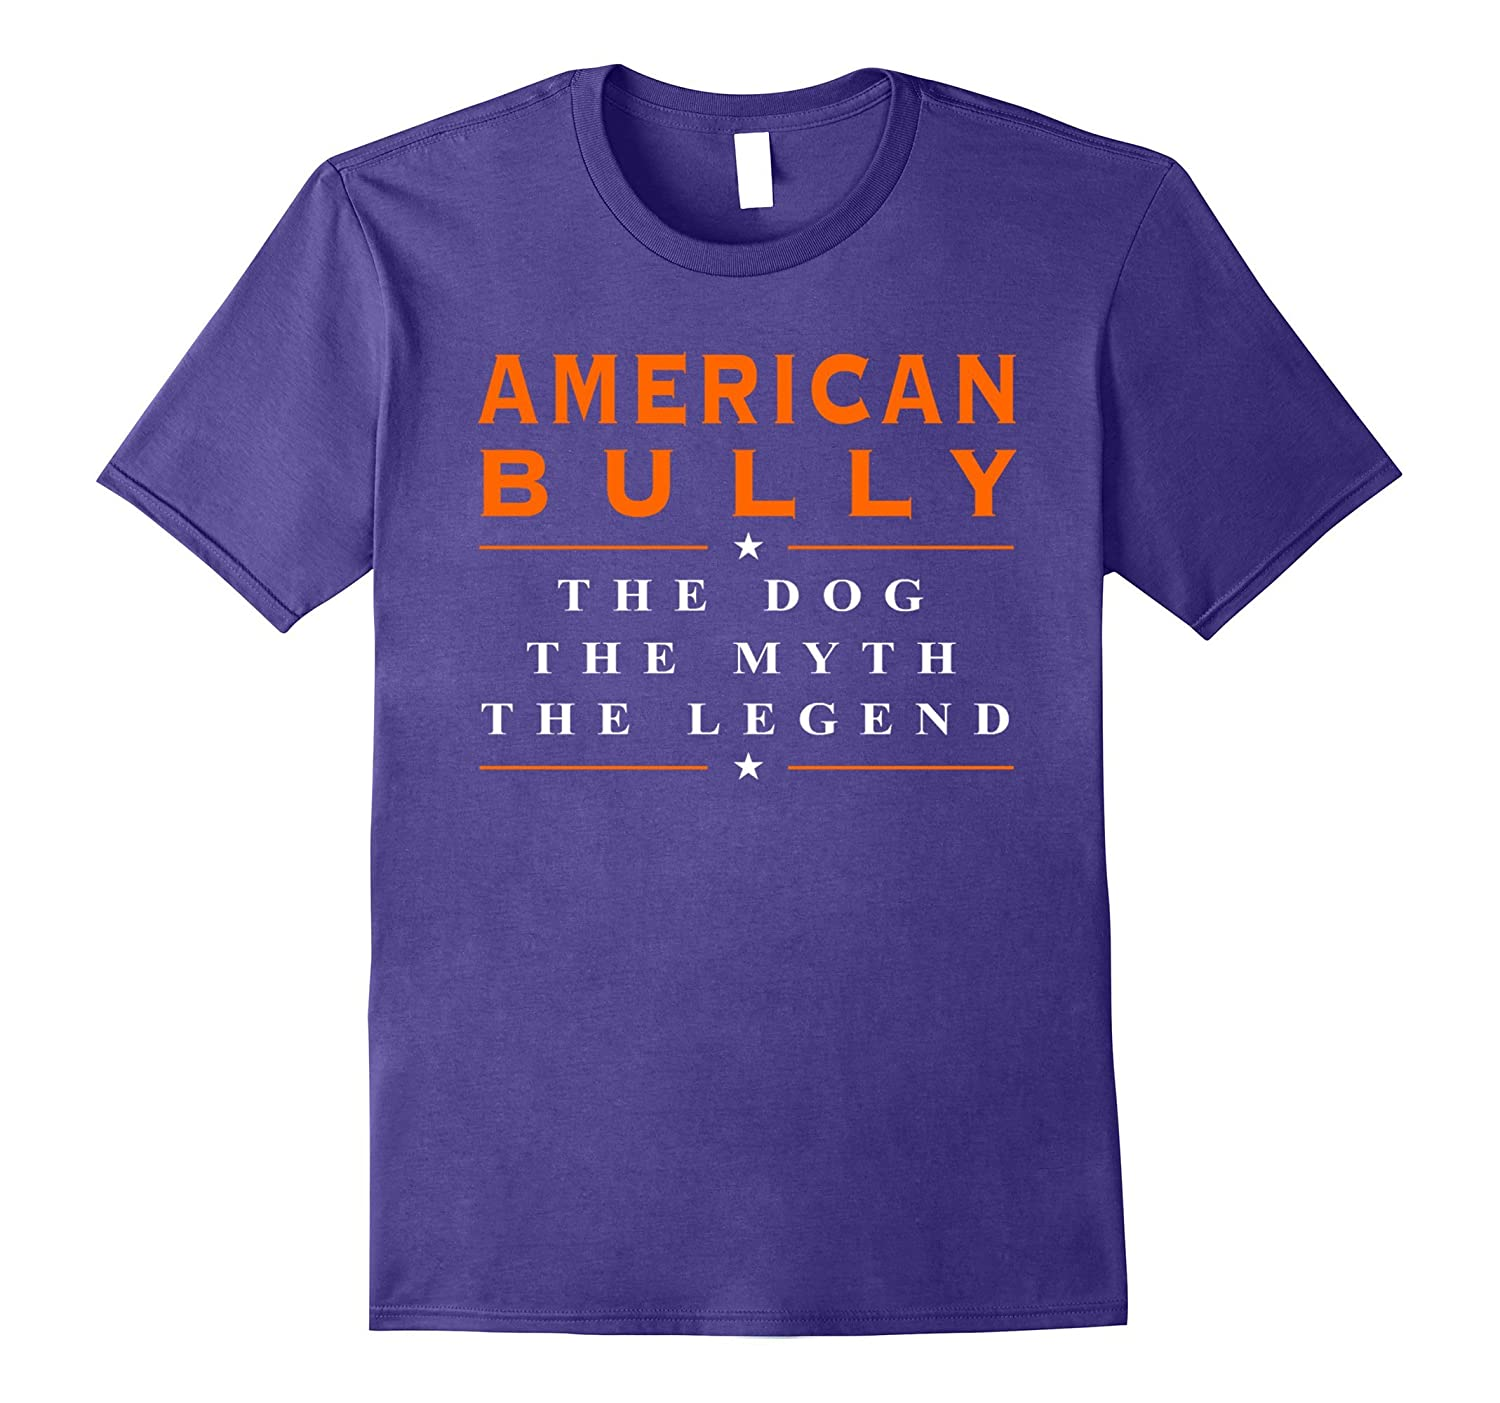 American Bully shirt | American Bully The Dog The Myth The L-TH